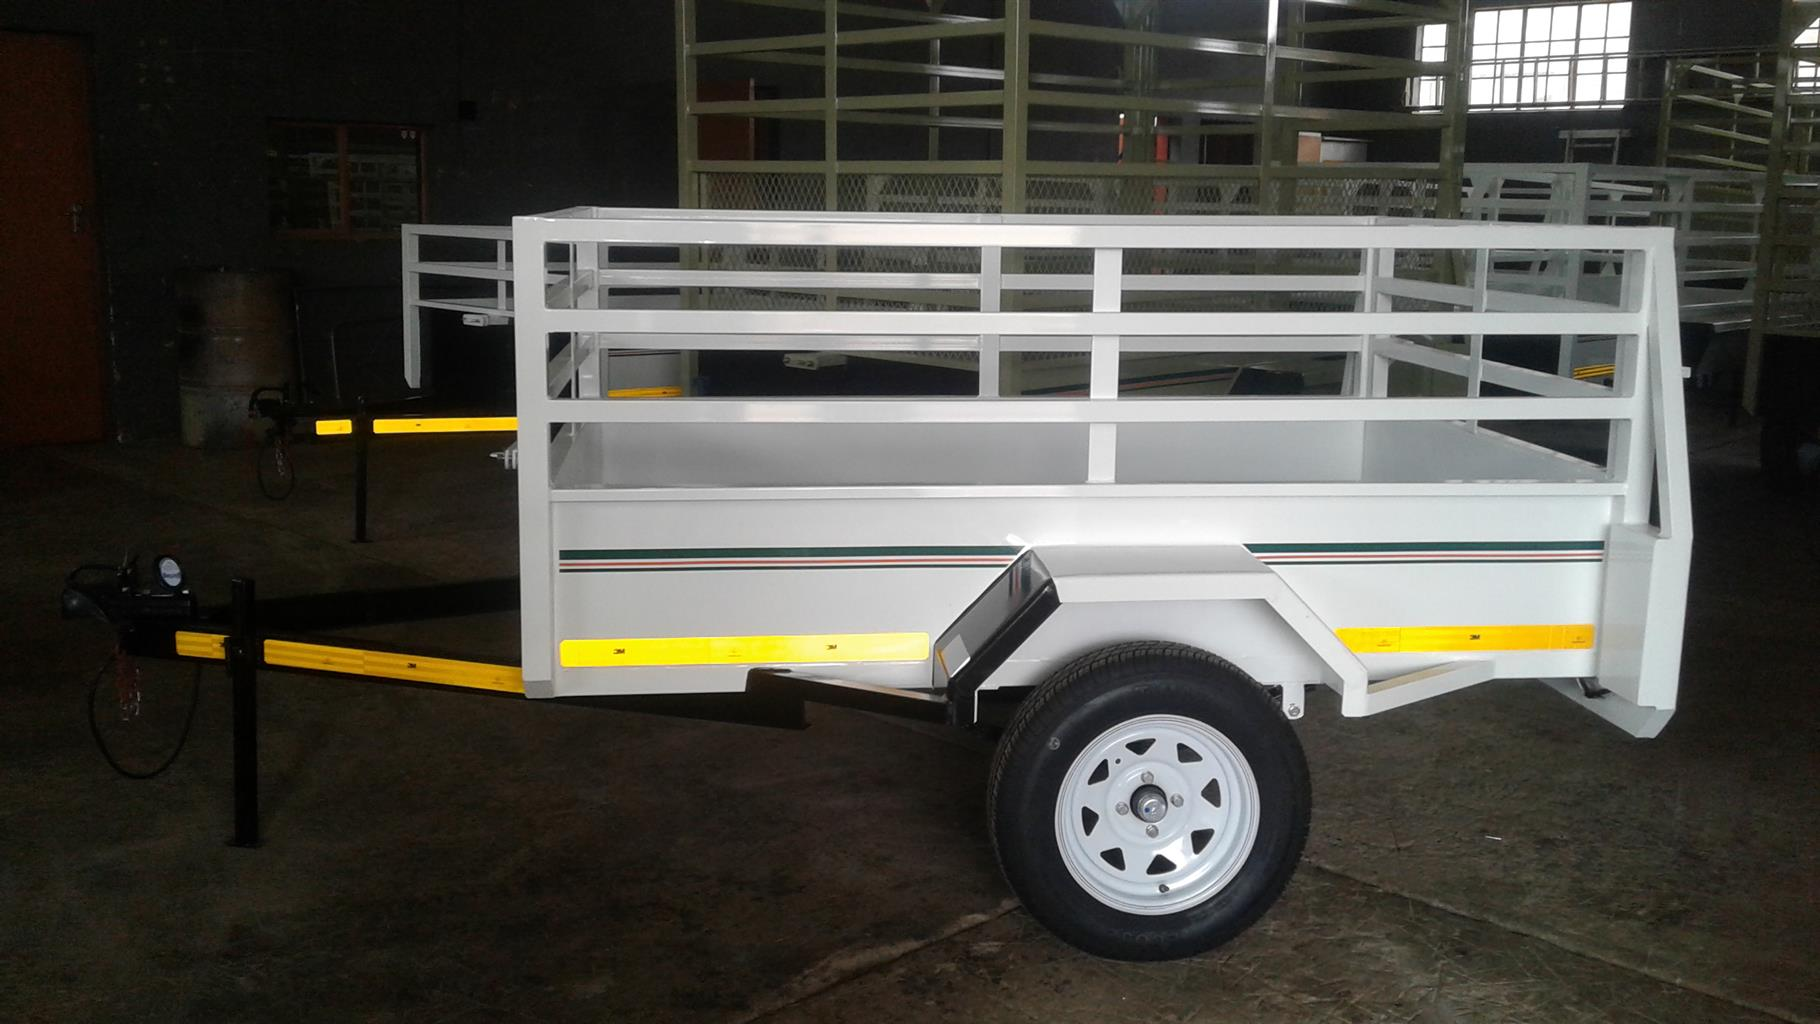 2M TRAILER FOR SALE, SABS APPROVED, BRAND NEW, PAPERS INCL